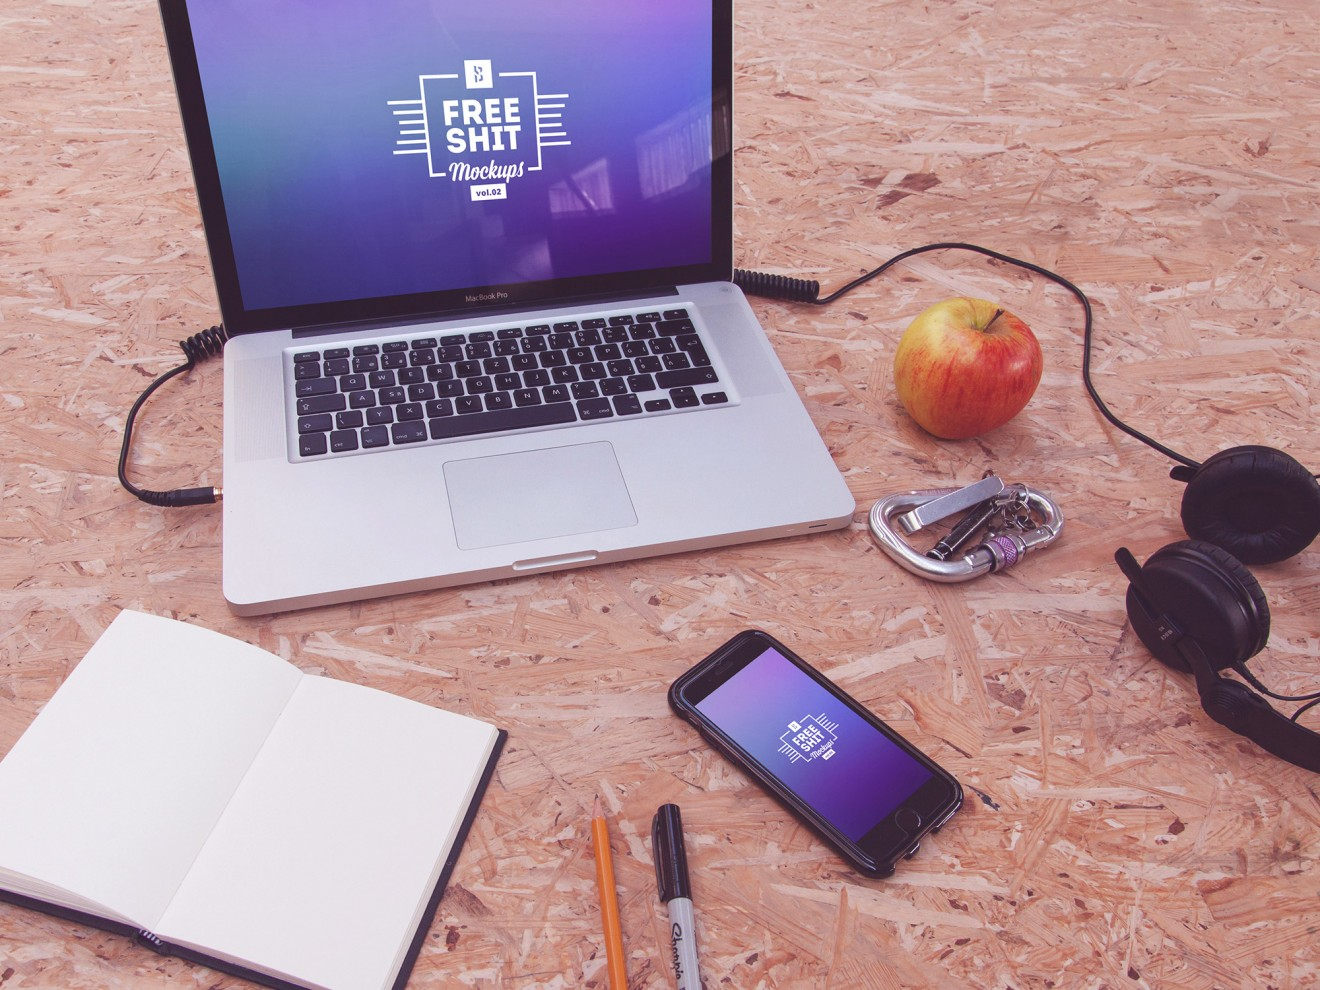 10-free-hi-res-iphone-macbook-mockups